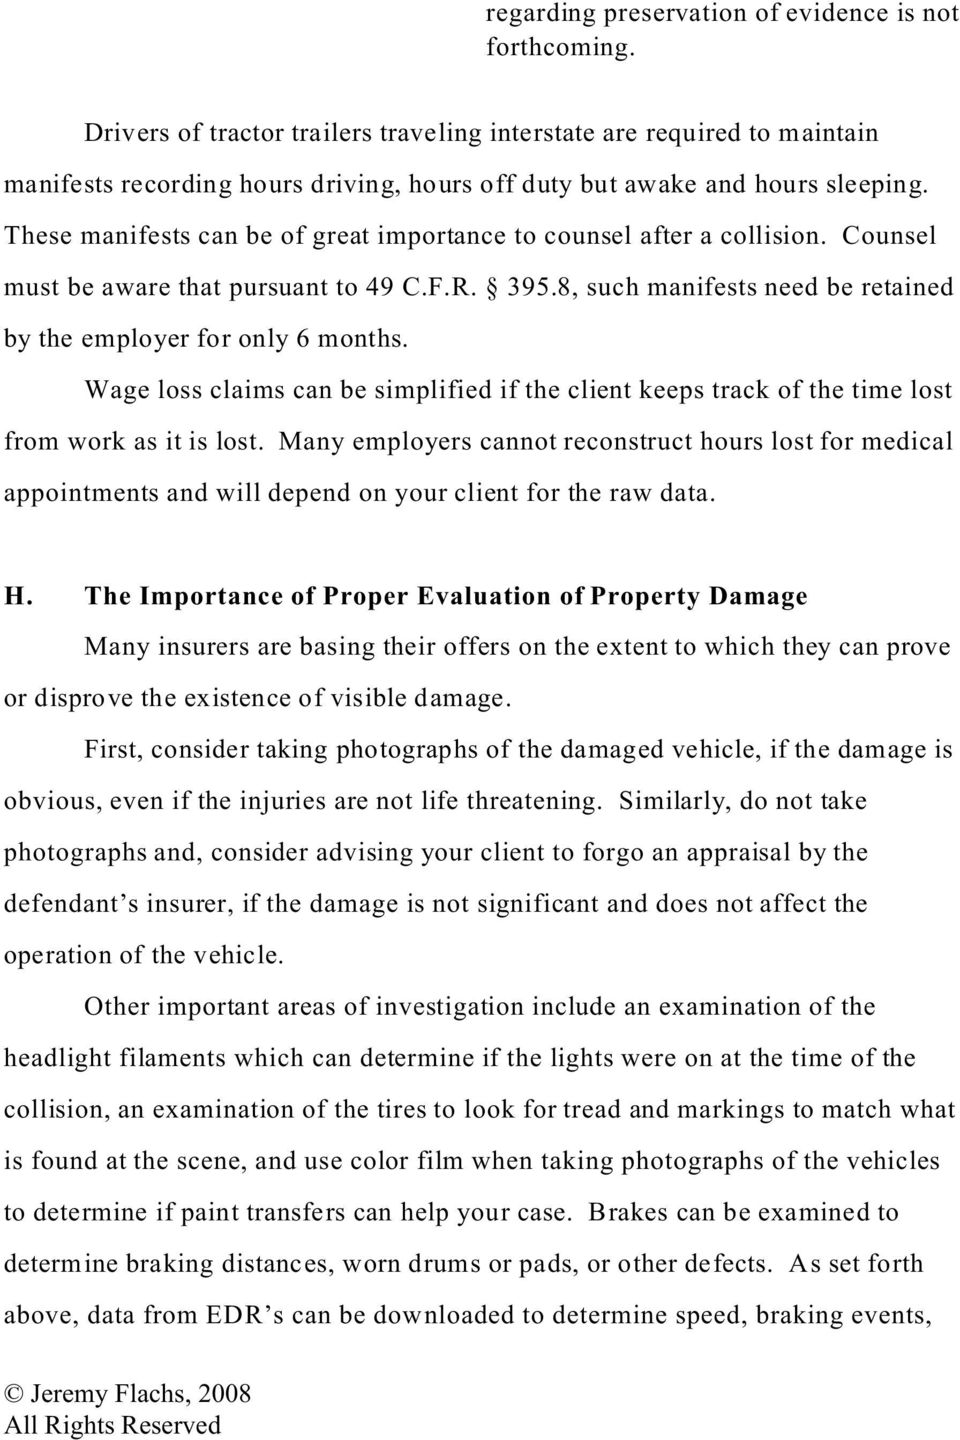 These manifests can be of great importance to counsel after a collision. Counsel must be aware that pursuant to 49 C.F.R. 395.8, such manifests need be retained by the employer for only 6 months.